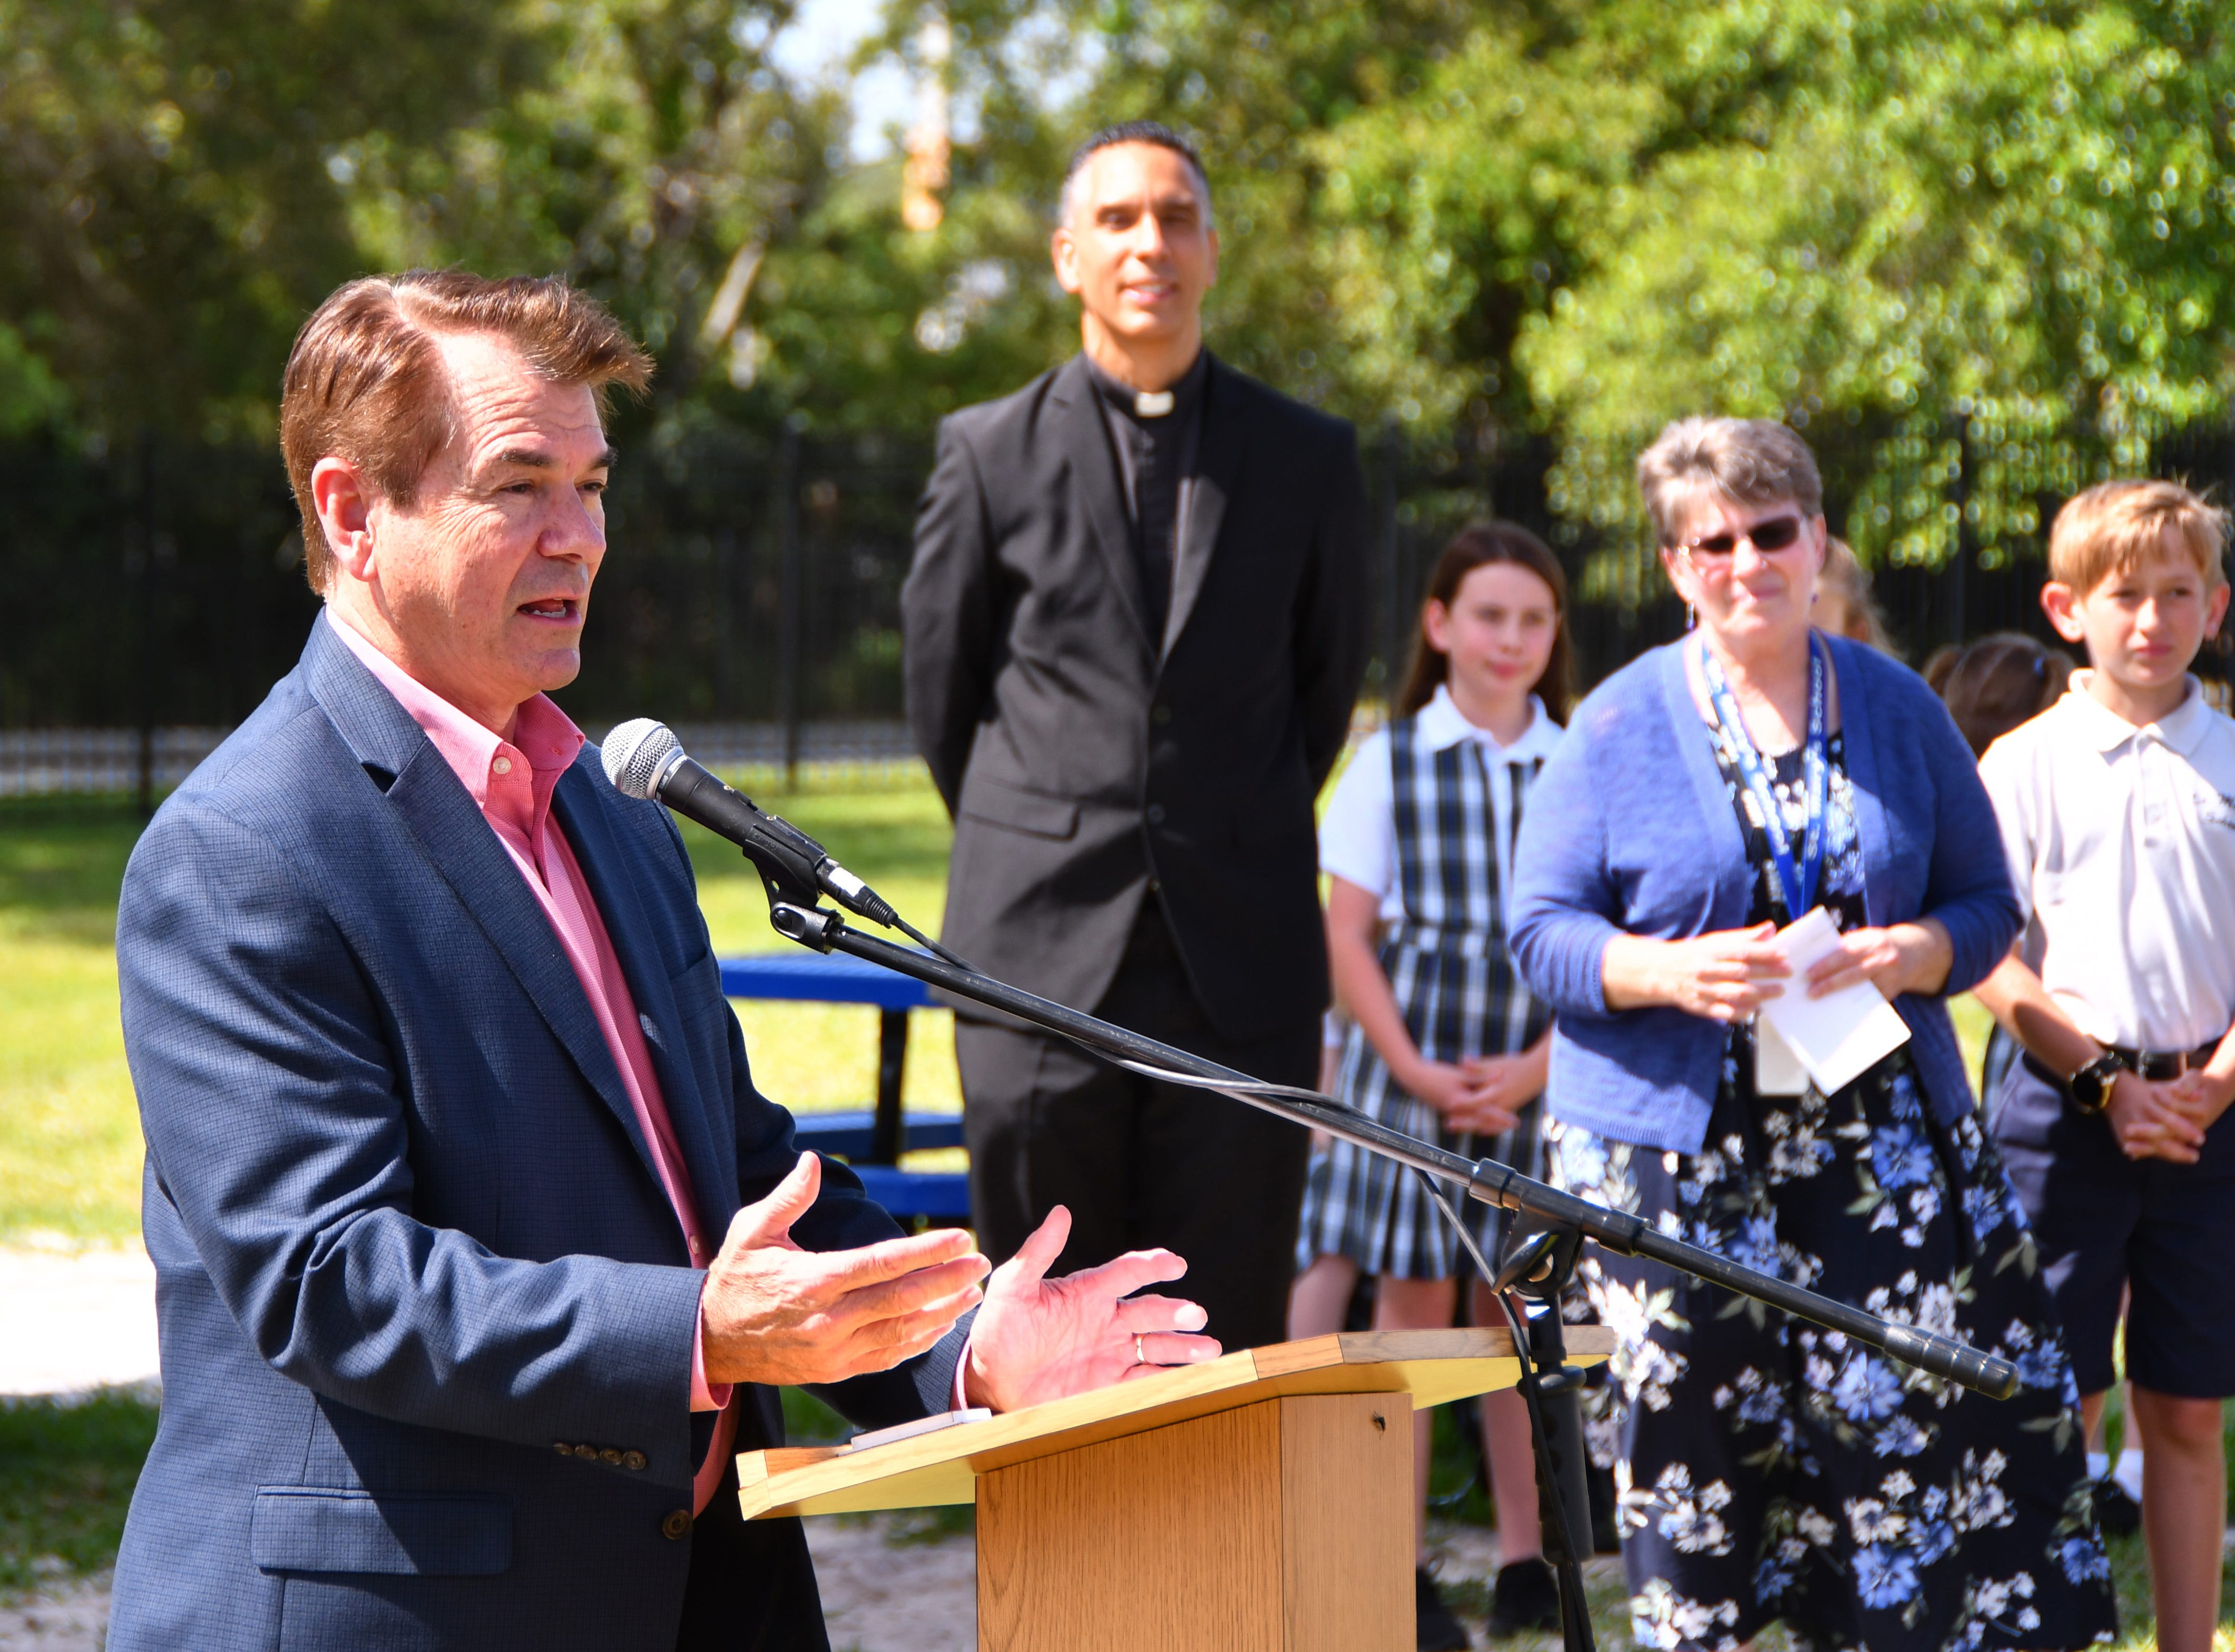 State Rep. Thad Altman, who attended St. Mary, was one of the speakers. St. Mary Catholic School in Rockledge hosted a dedication ceremony for its newly constructed shade structures Wednesday morning made possible by a grant from the American Academy of Dermatology's Adopt-A-Shade program. Board-certified dermatologist, Francille MacFarland, MD, FAAD, provided a generous donation to the AAD, which completed the funding necessary to build the structure over the school's primary playground and picnic area. The shade will help protect more than 250 children and teachers daily from the sun's harmful ultraviolet rays. Other parishioners, families, doctors and school fund raisers helped cover the cost.